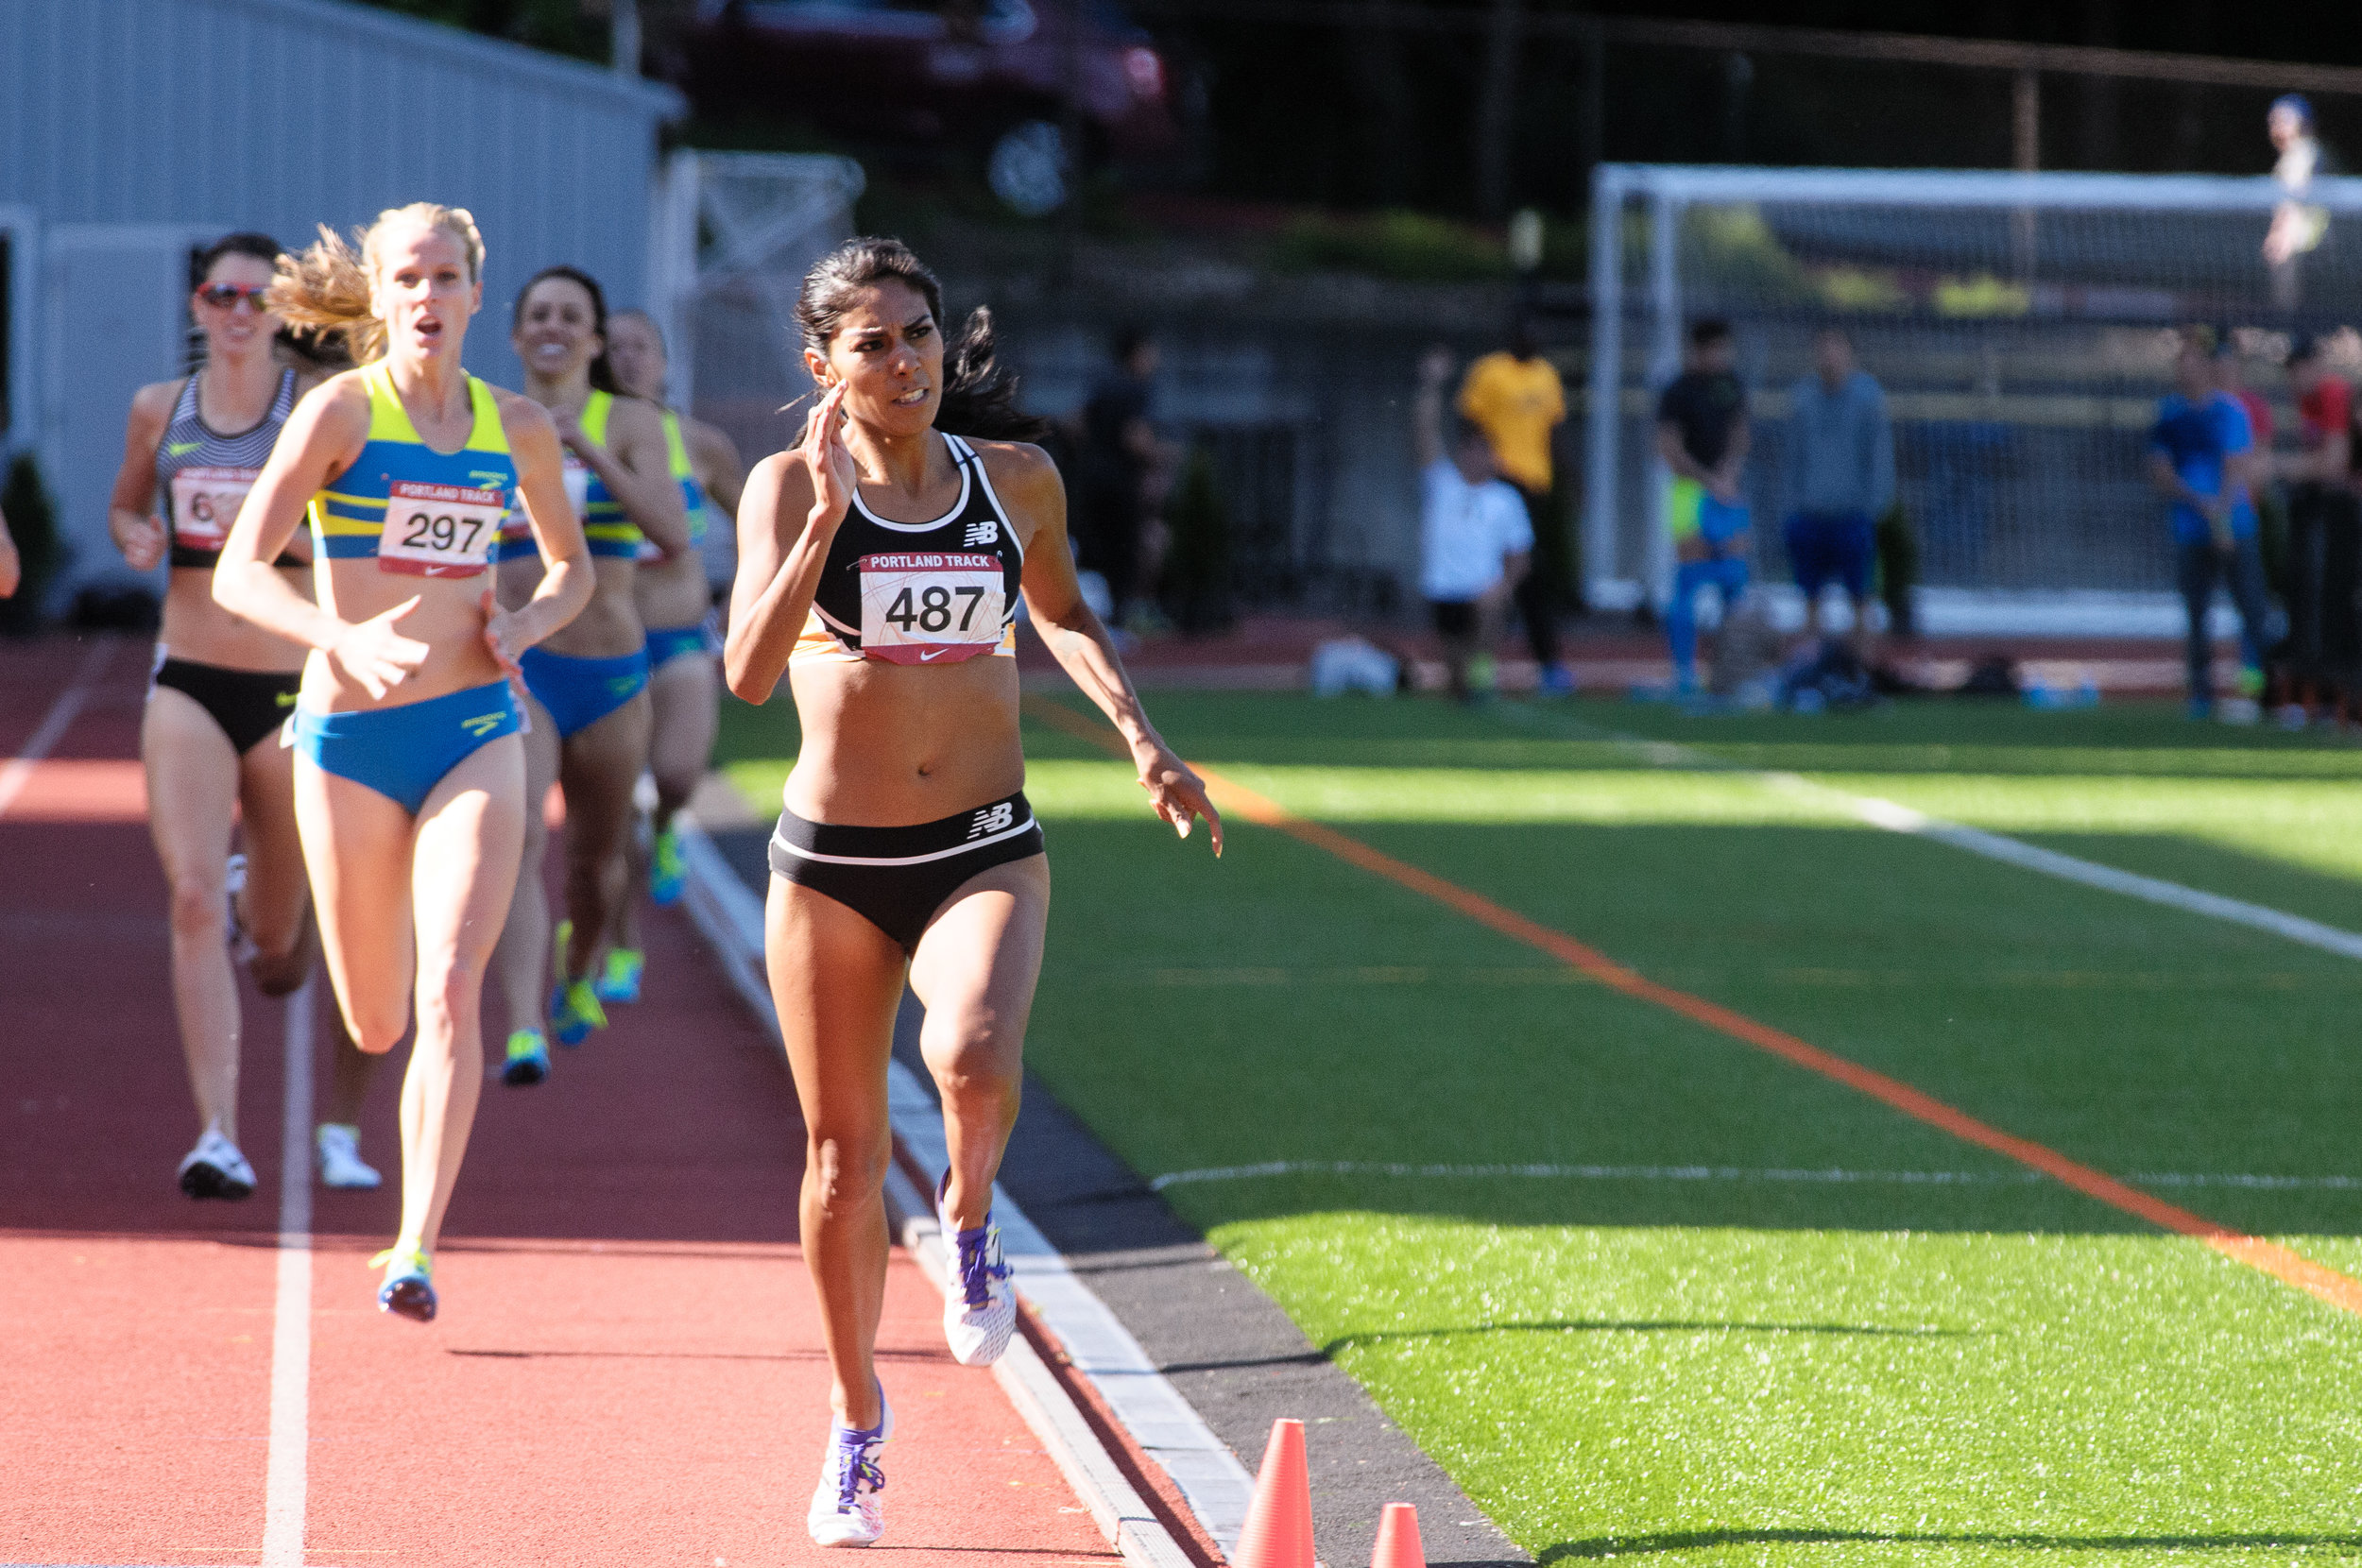 Friend of HPW and esteemed competitor, Brenda Martinez (#487), shown winning the 2016 Portland Track Festival Women's 800m with HPW Elite's  McKayla Fricker (#297) placing 2nd.